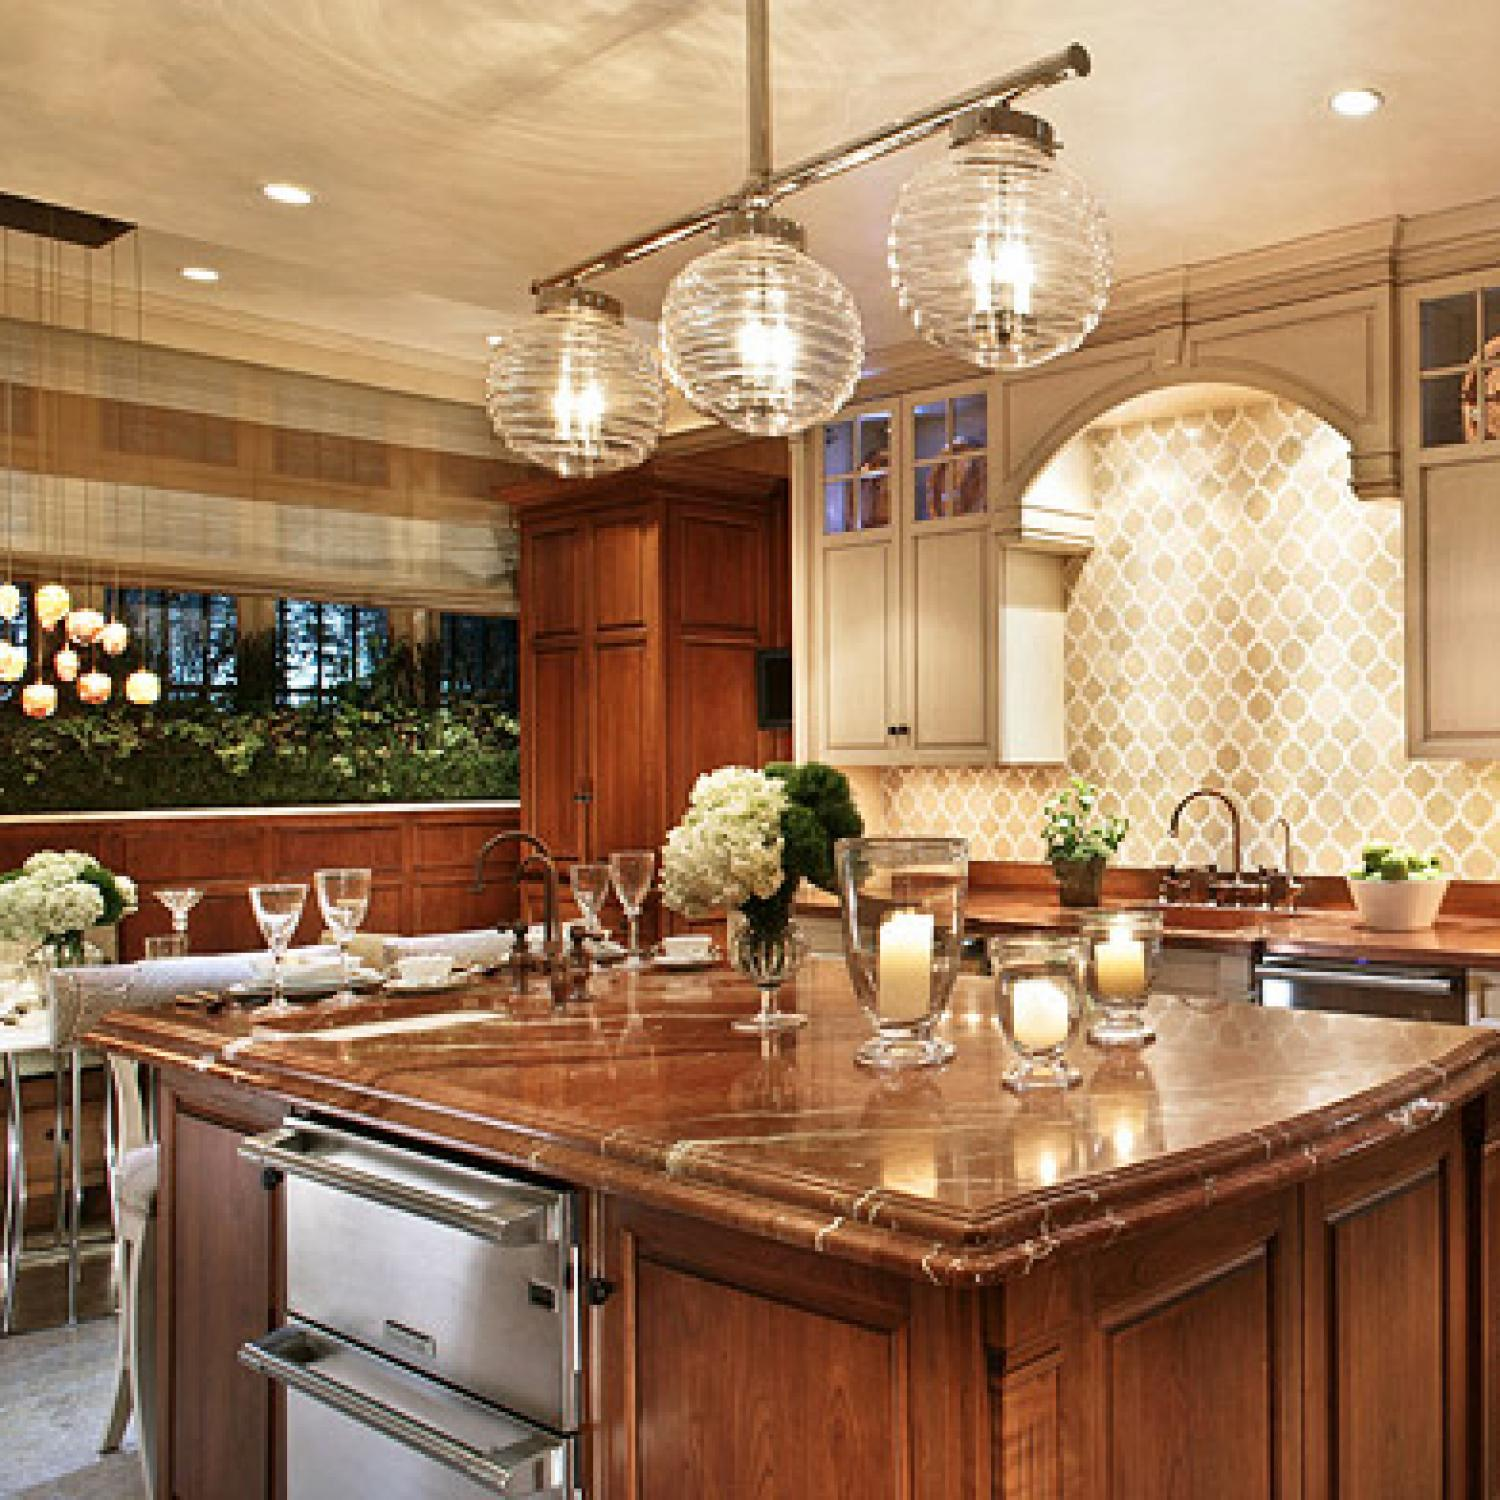 Island Kitchen Design Ideas: Welcoming, Intimate Showhouse Kitchen